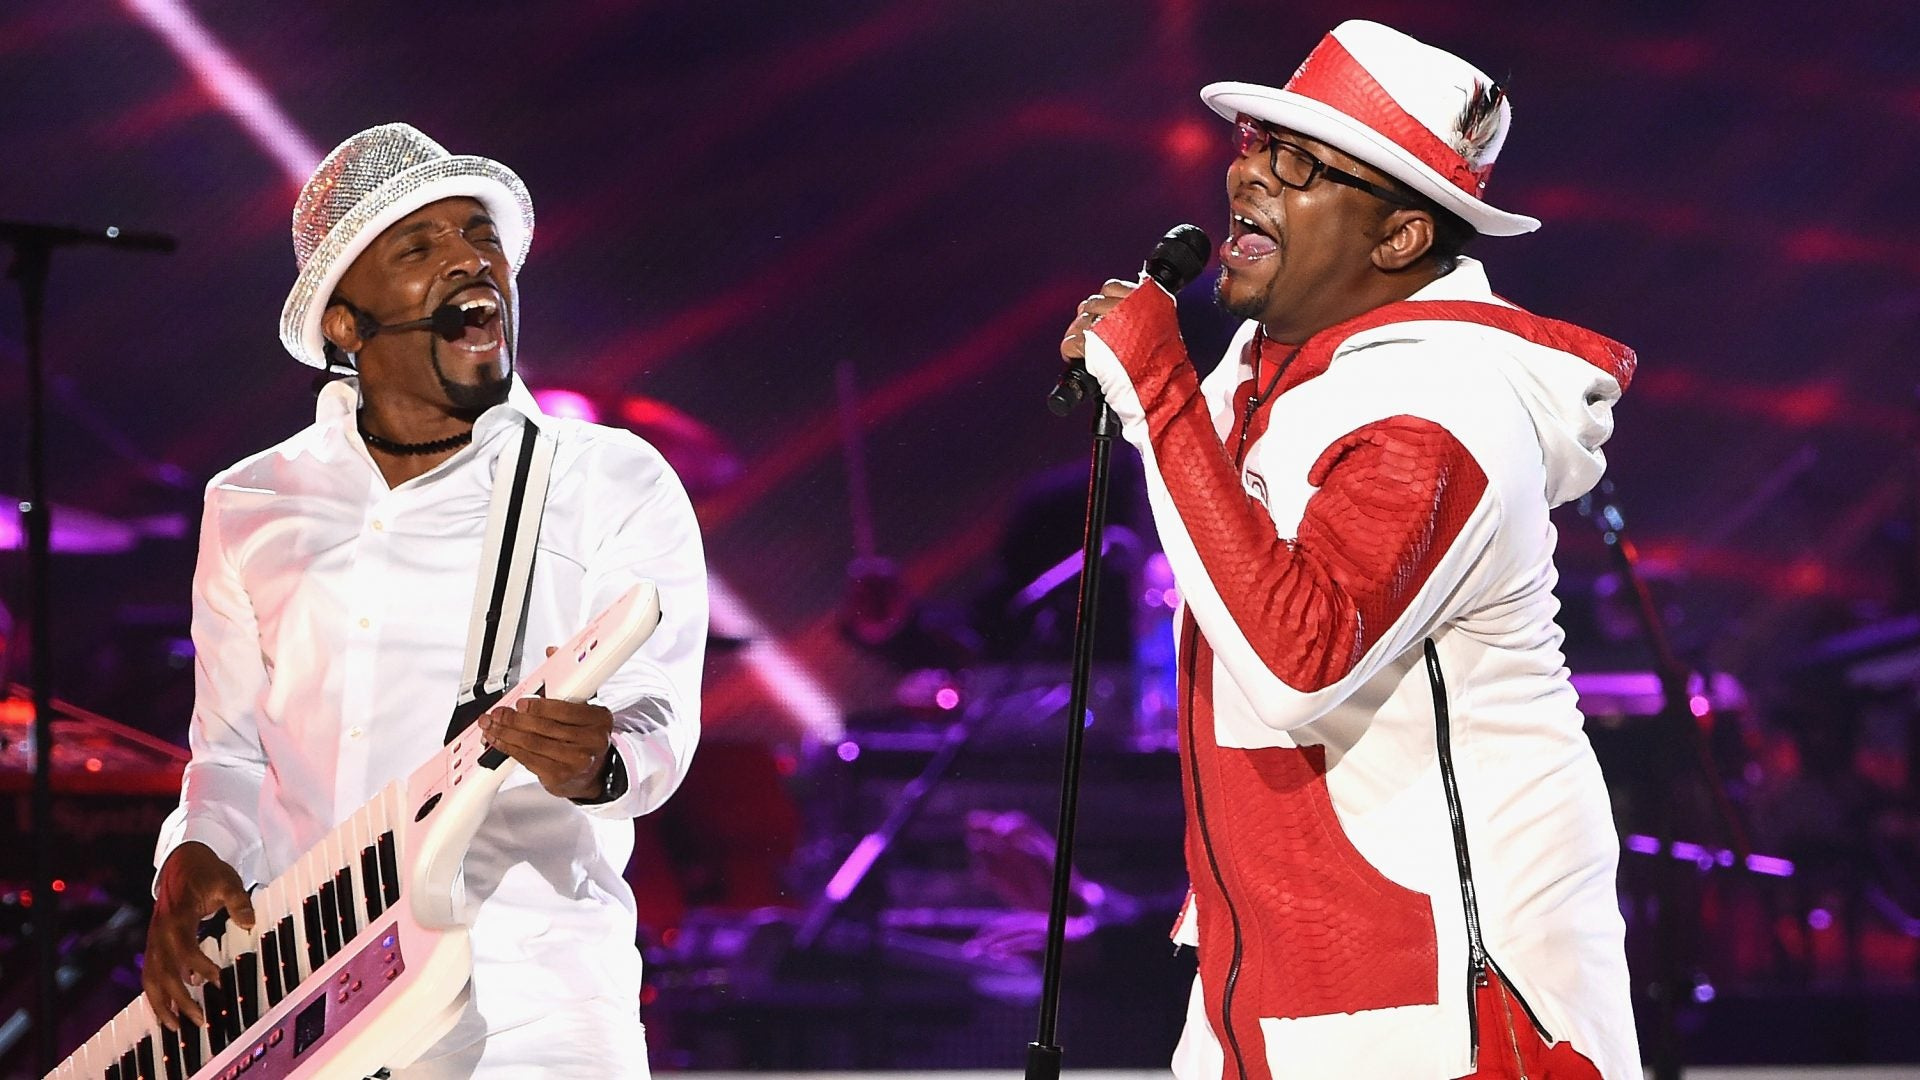 Teddy Riley Says He And Bobby Brown Had Beef While Recording 'My Prerogative'